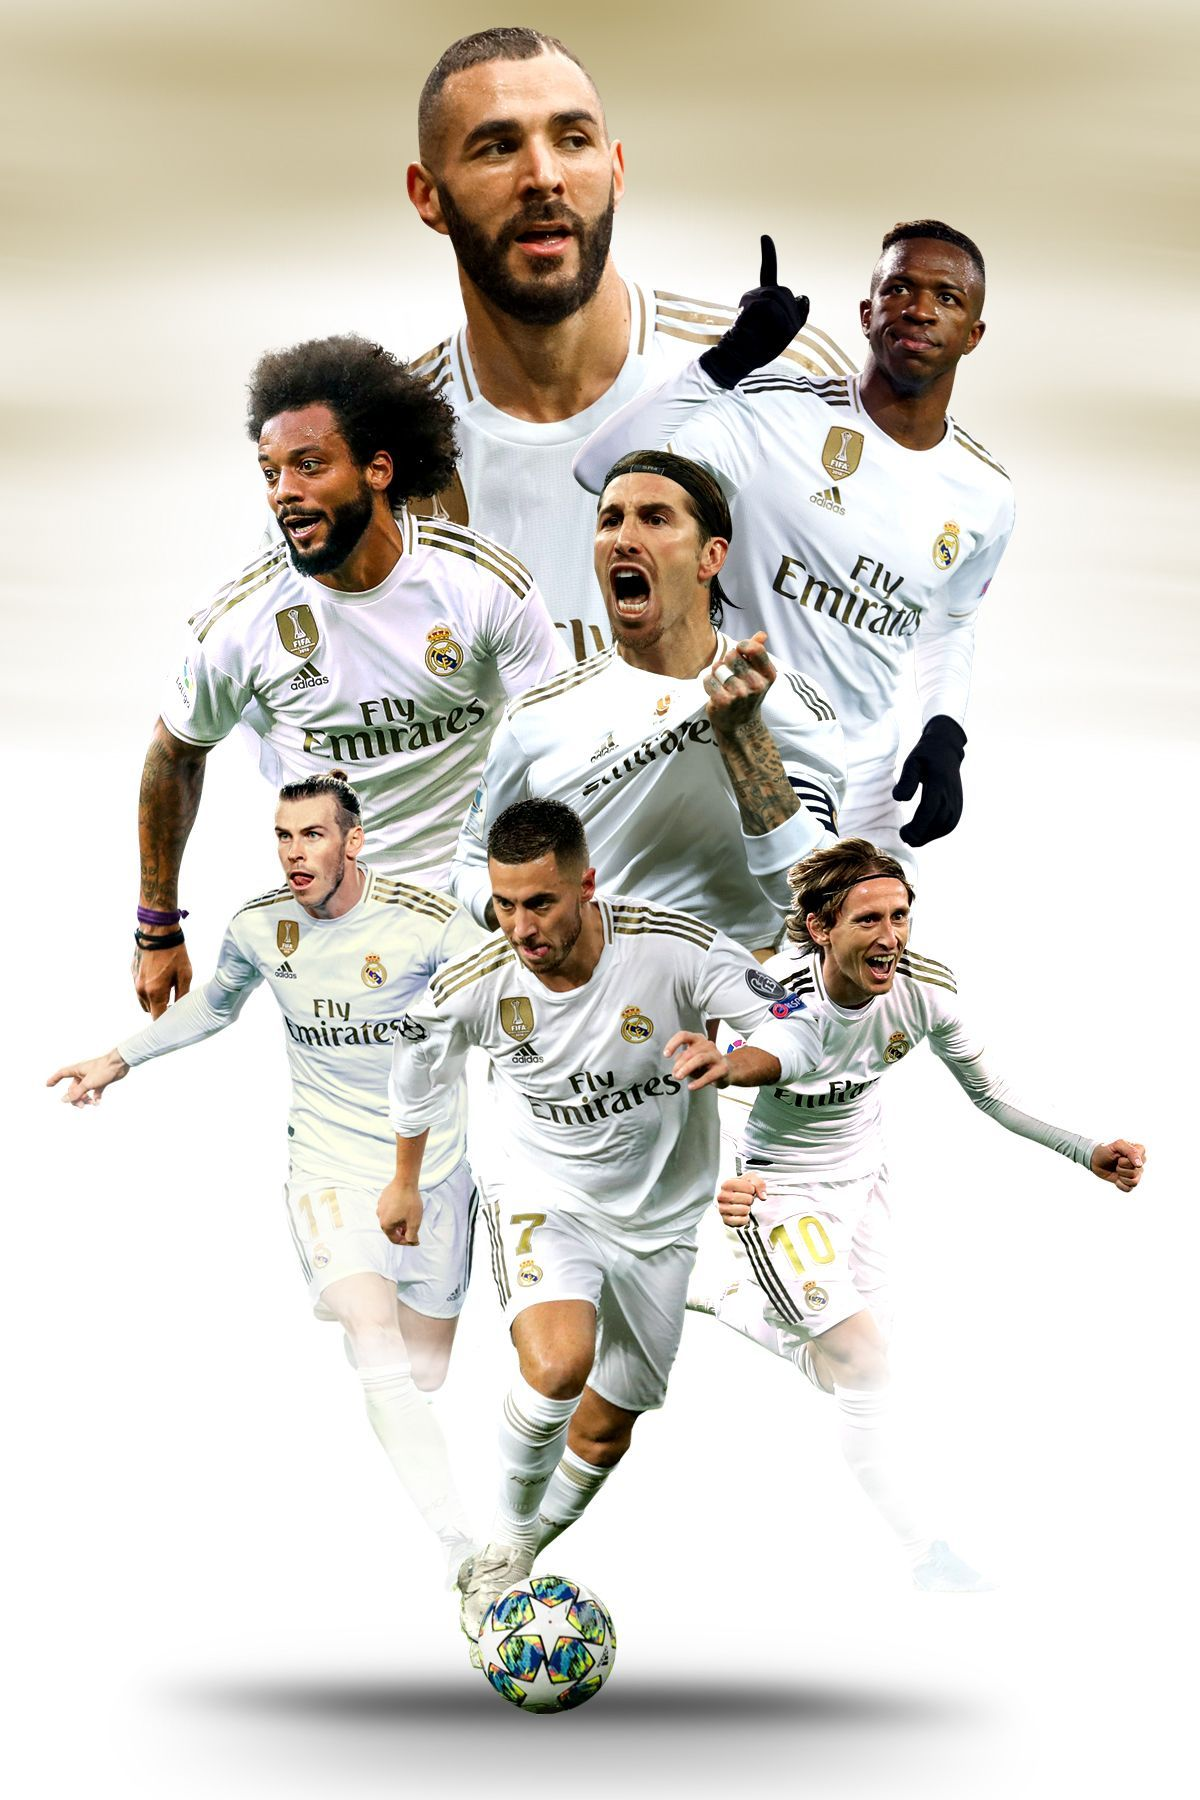 Real Madrid 4K HD Wallpapers For PC & Phone The Football Lovers